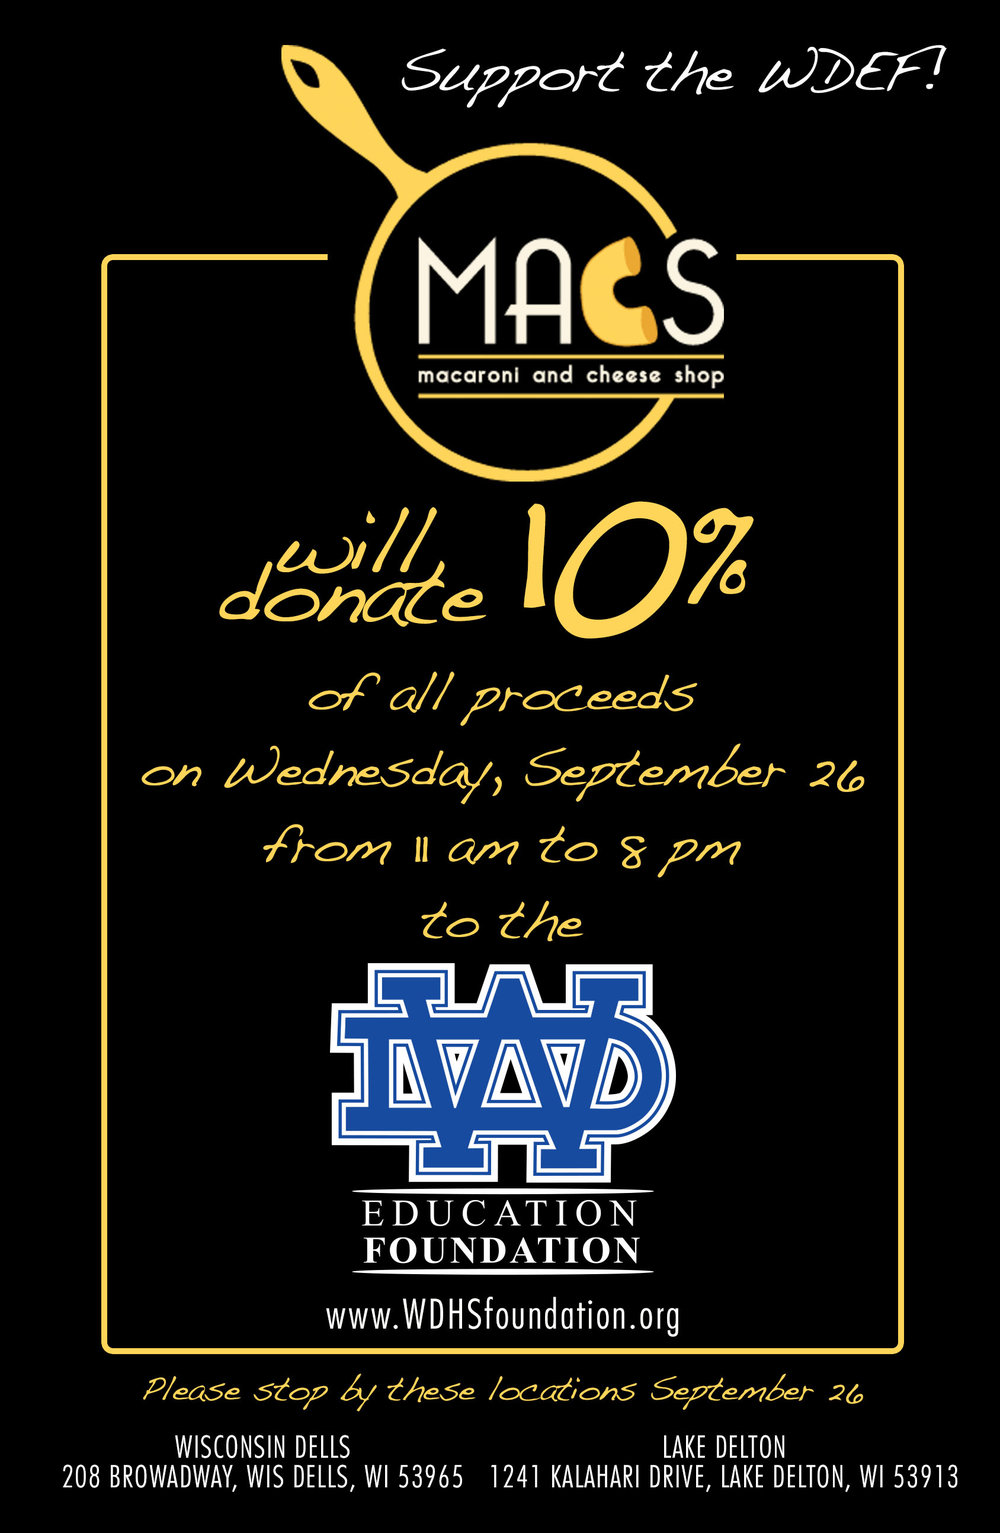 On September 26, from 11am - 8pm, MACS Macaroni and Cheese Shop will donate 10% of all proceeds to the Wisconsin Dells Education Foundation.